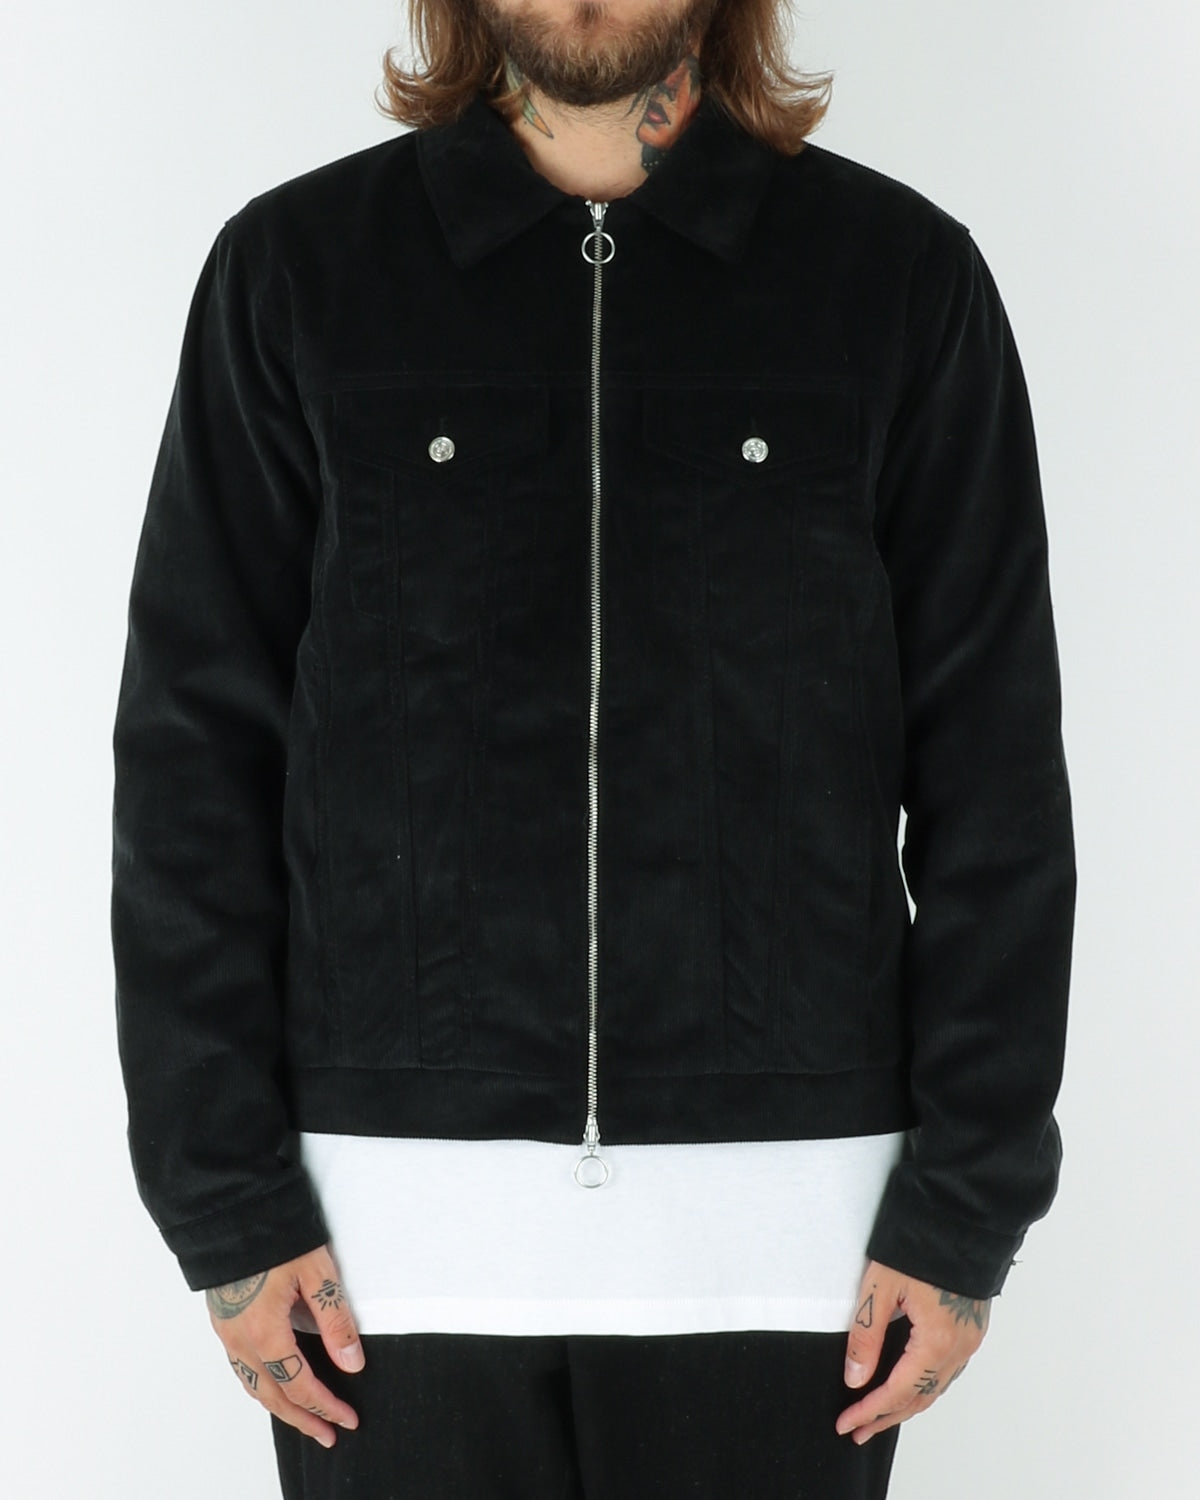 soulland_lakin_jacket_black_view_1_4